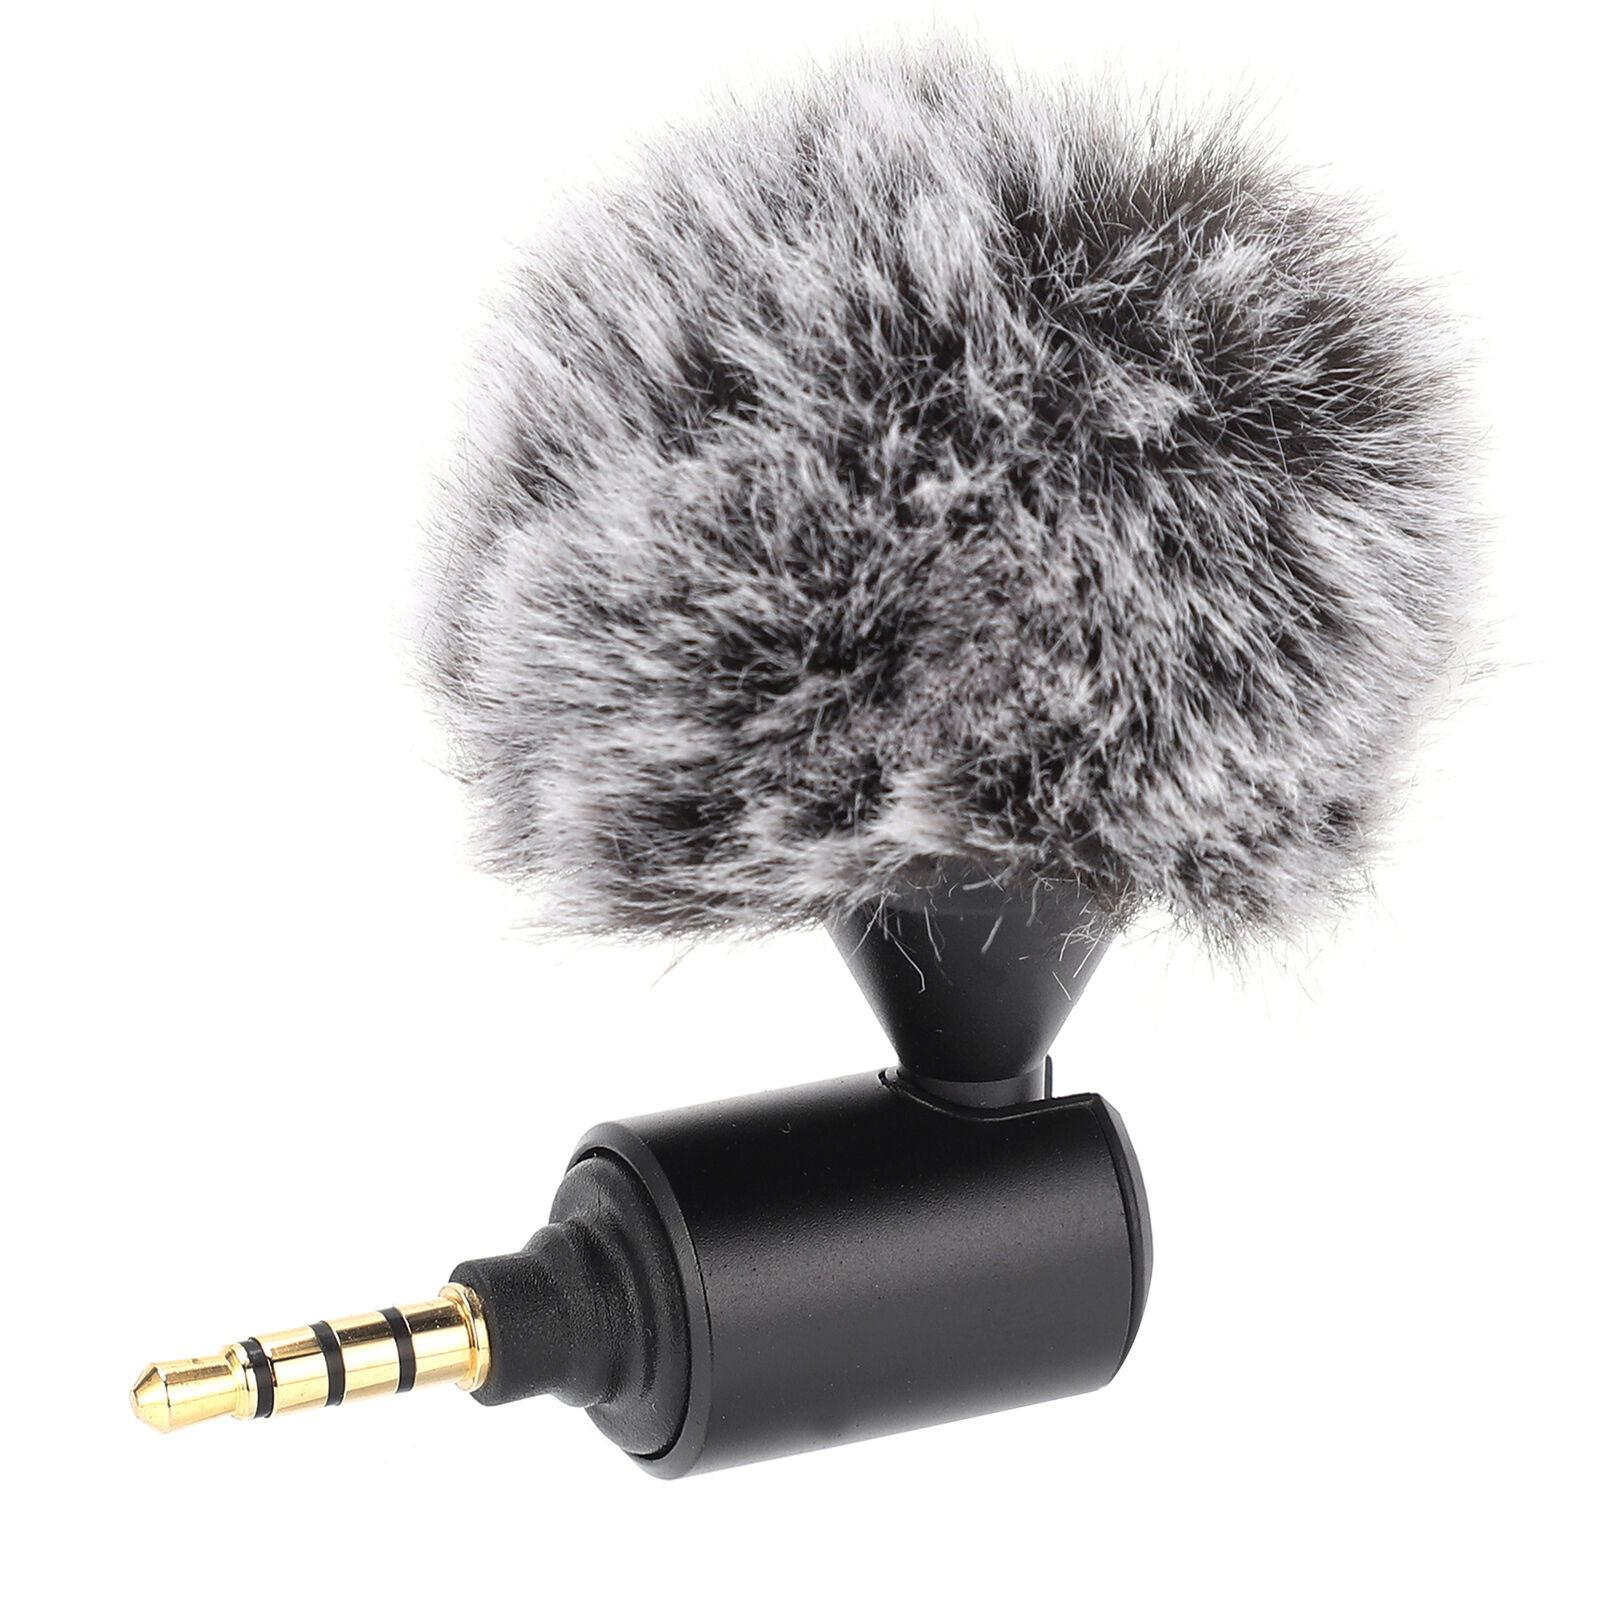 Mini 3.5mm Plug and Play Cardioid Microphone Mic for Mobile Phone DSLR Camera